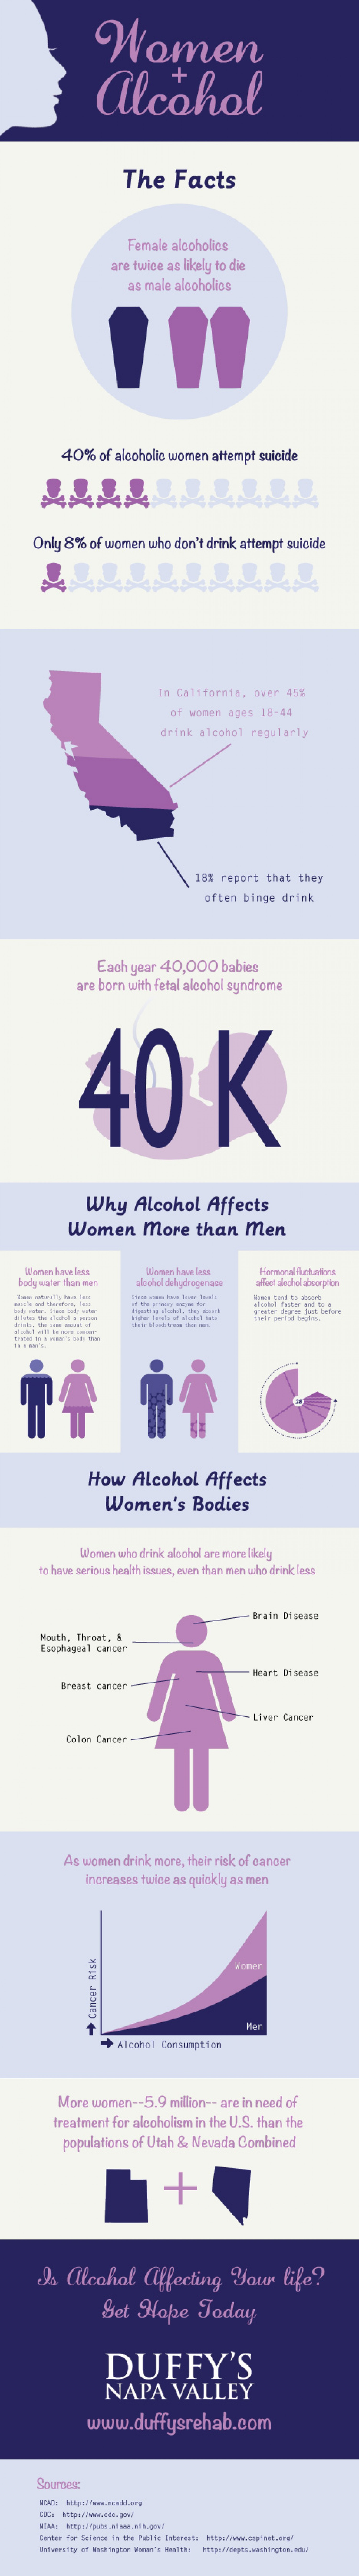 Women and Alcohol | Visual.ly